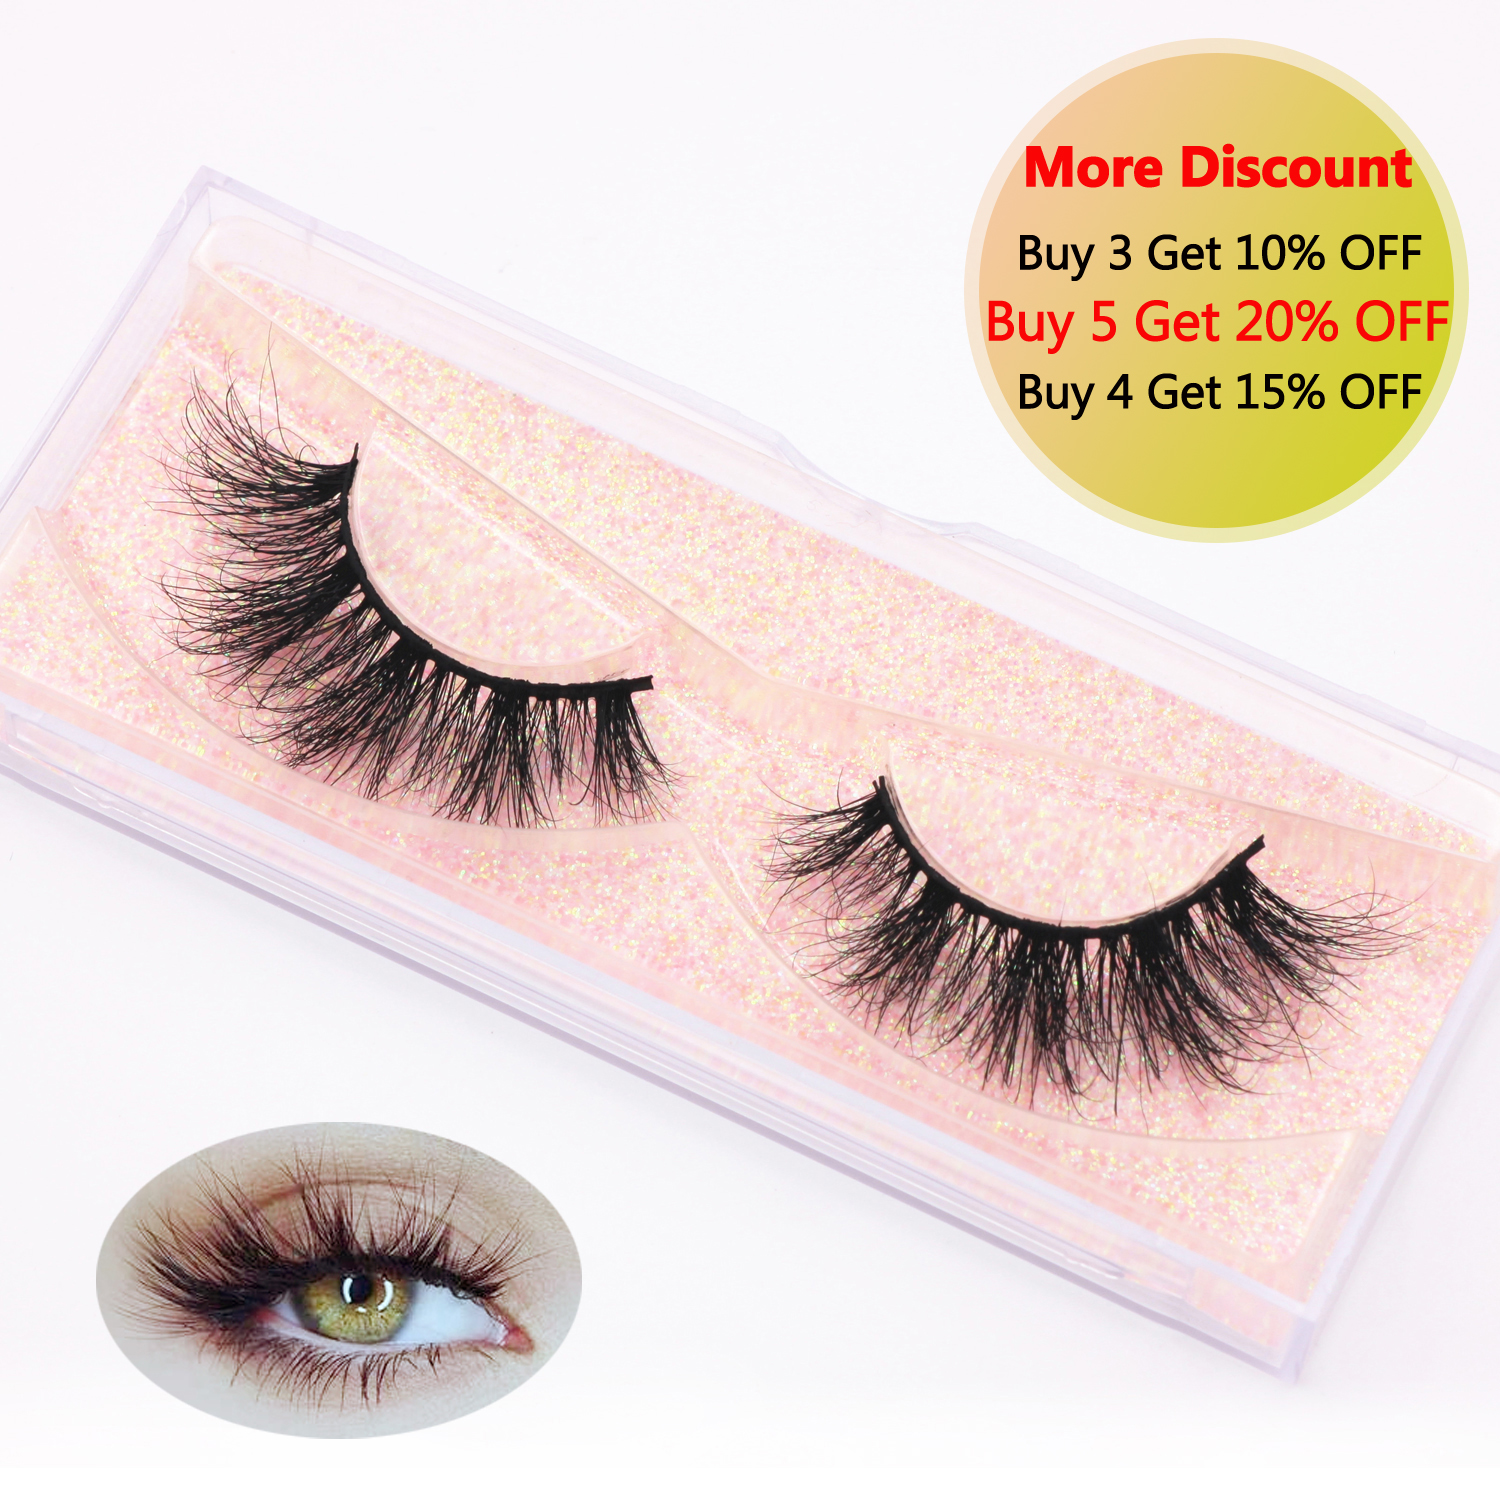 KEKEBAICHA Mink Lashes 3D Mink False Eyelashes Natural Lightweight Soft Mink Eyelashes Fluffy Dramatic Eyelashes Makeup E10 Lash